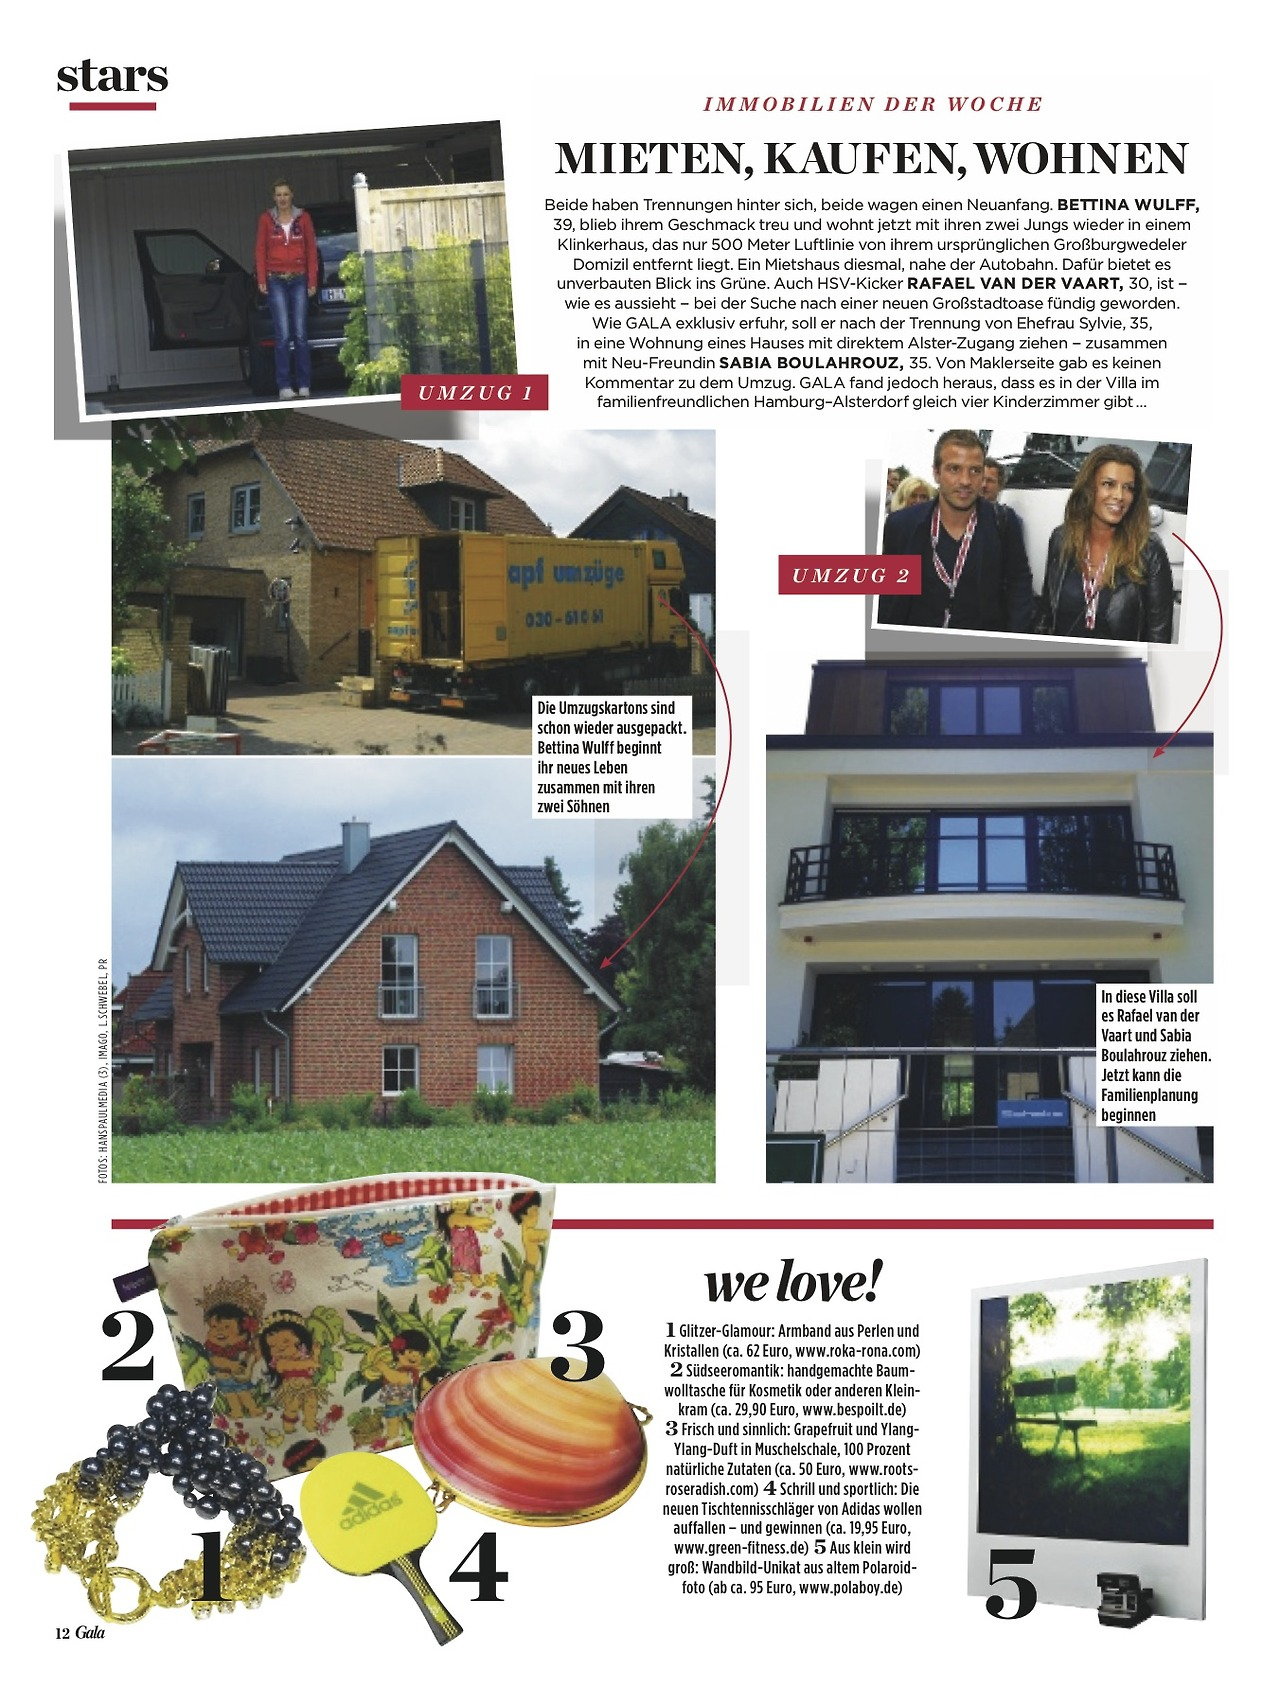 Gala Magazine (in Germany) LOVES us!